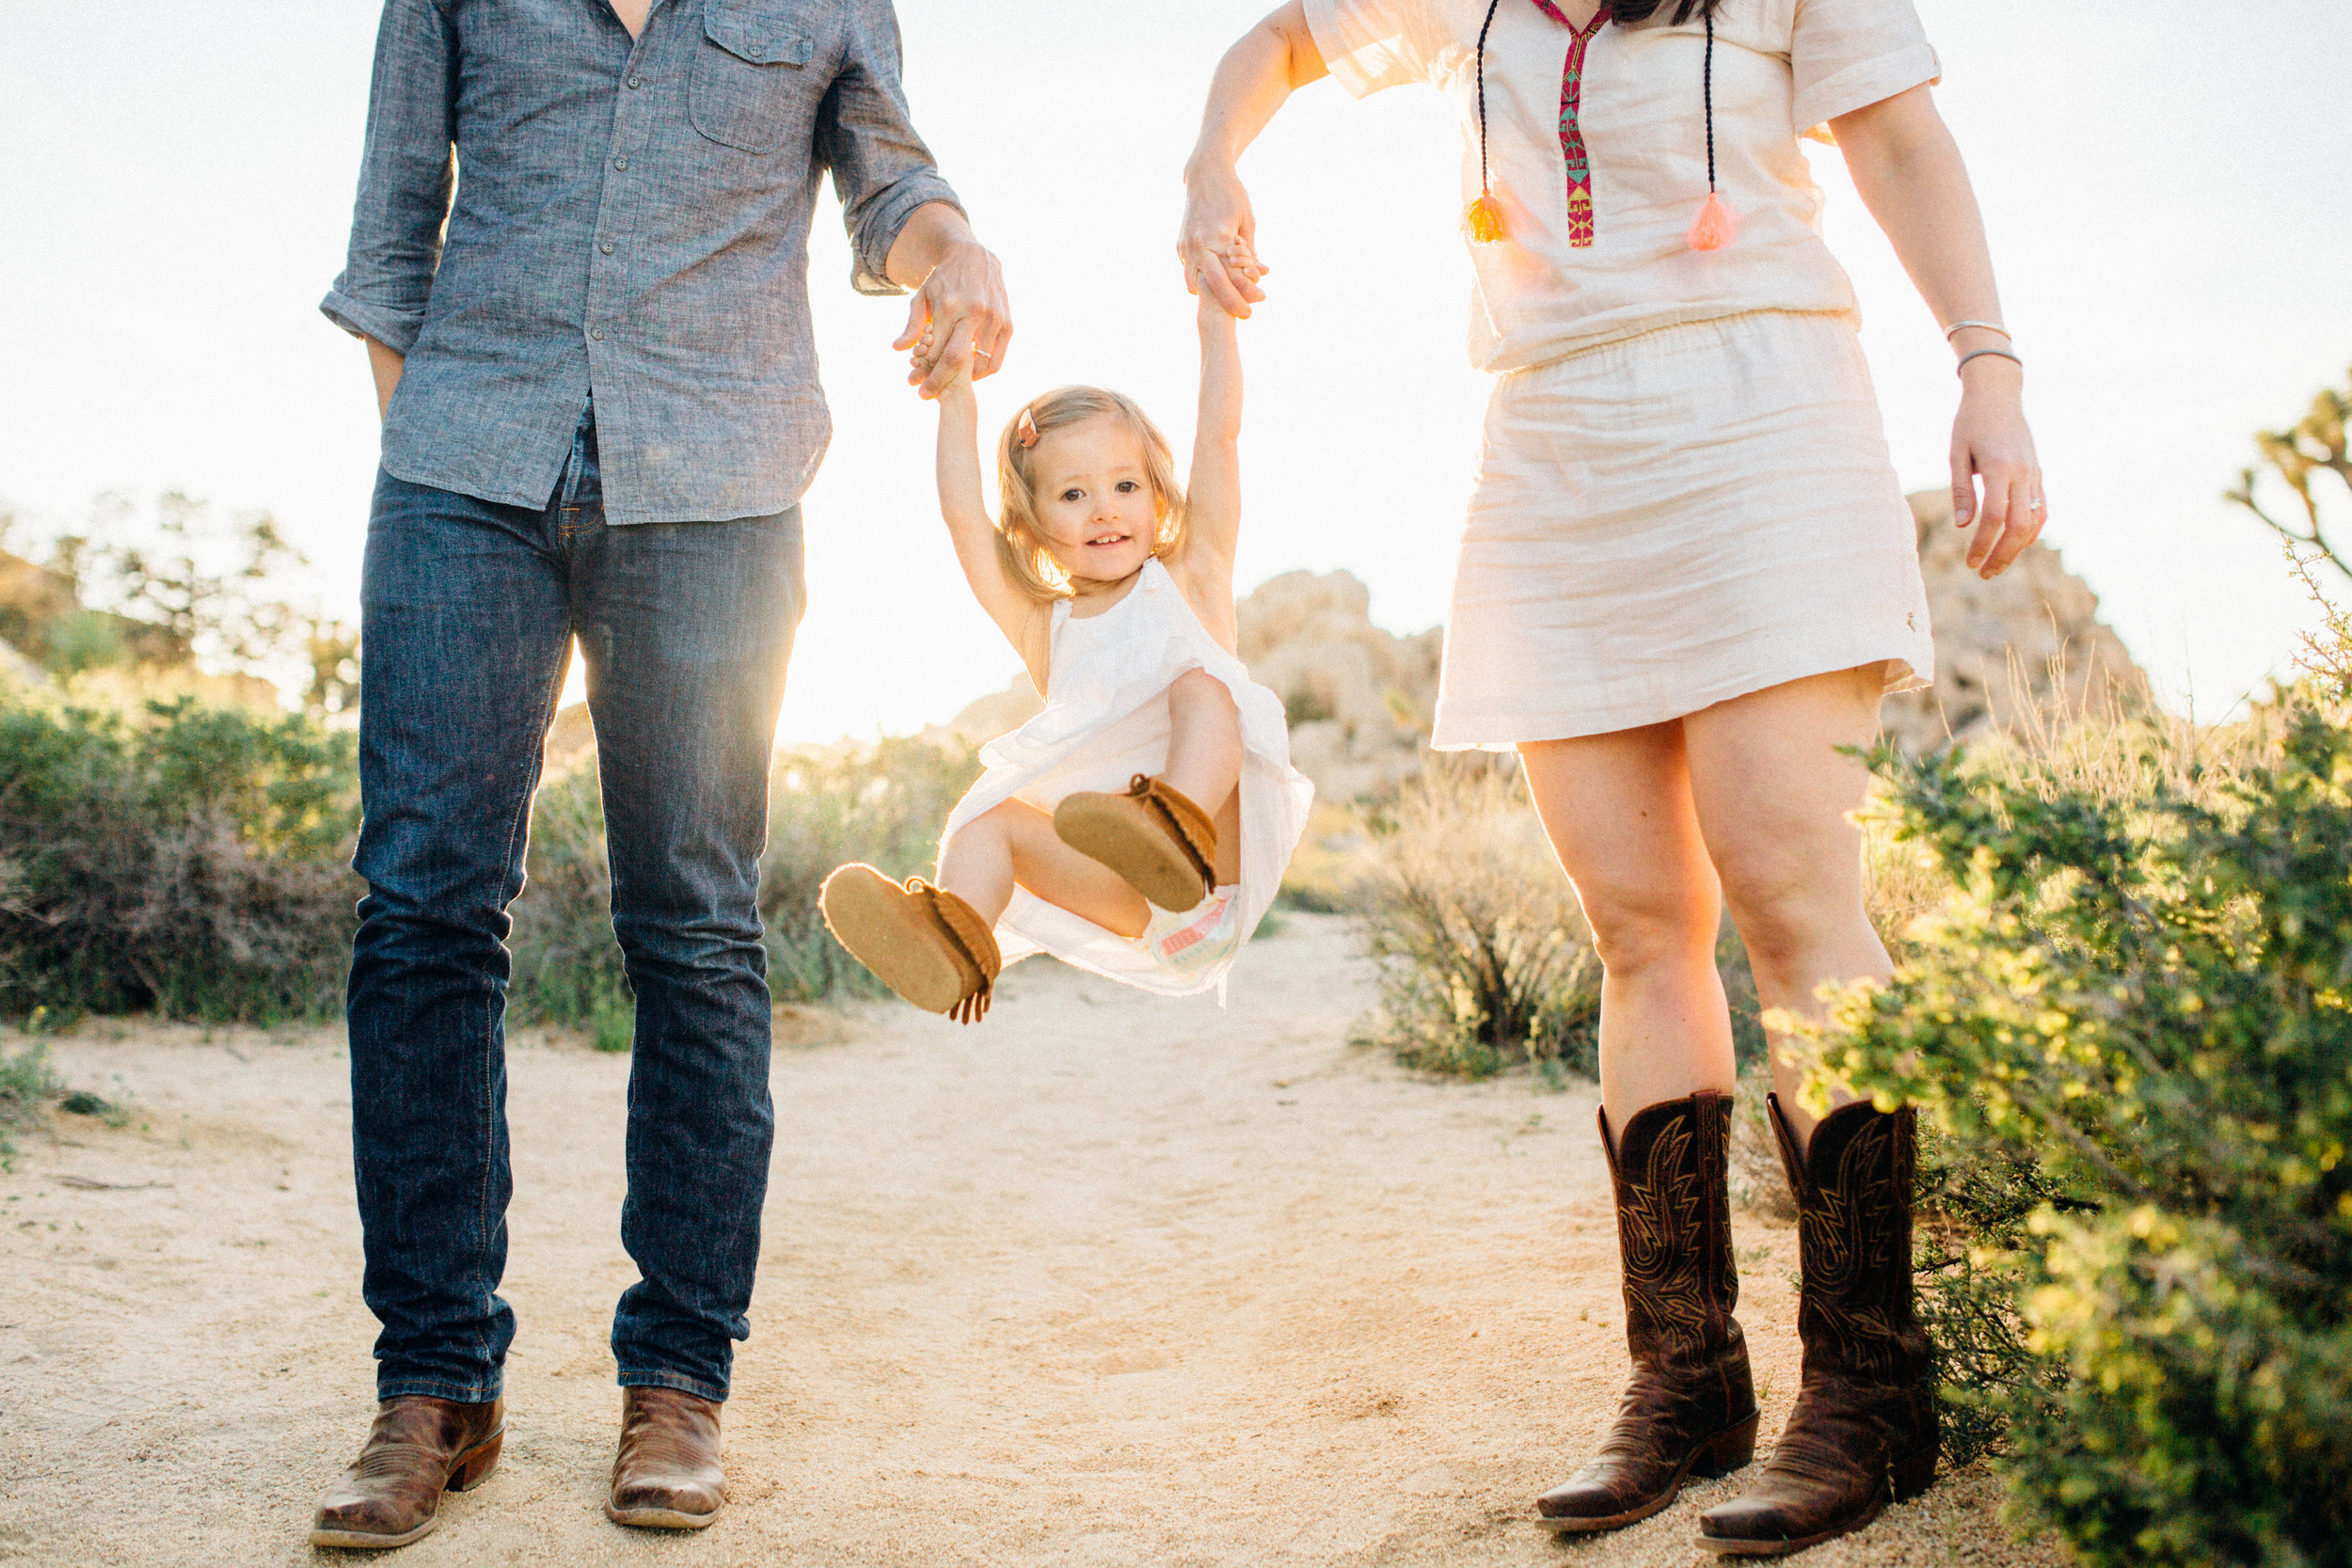 joshua-tree_california_family-session_nicki-sebastian-photography-220.jpg